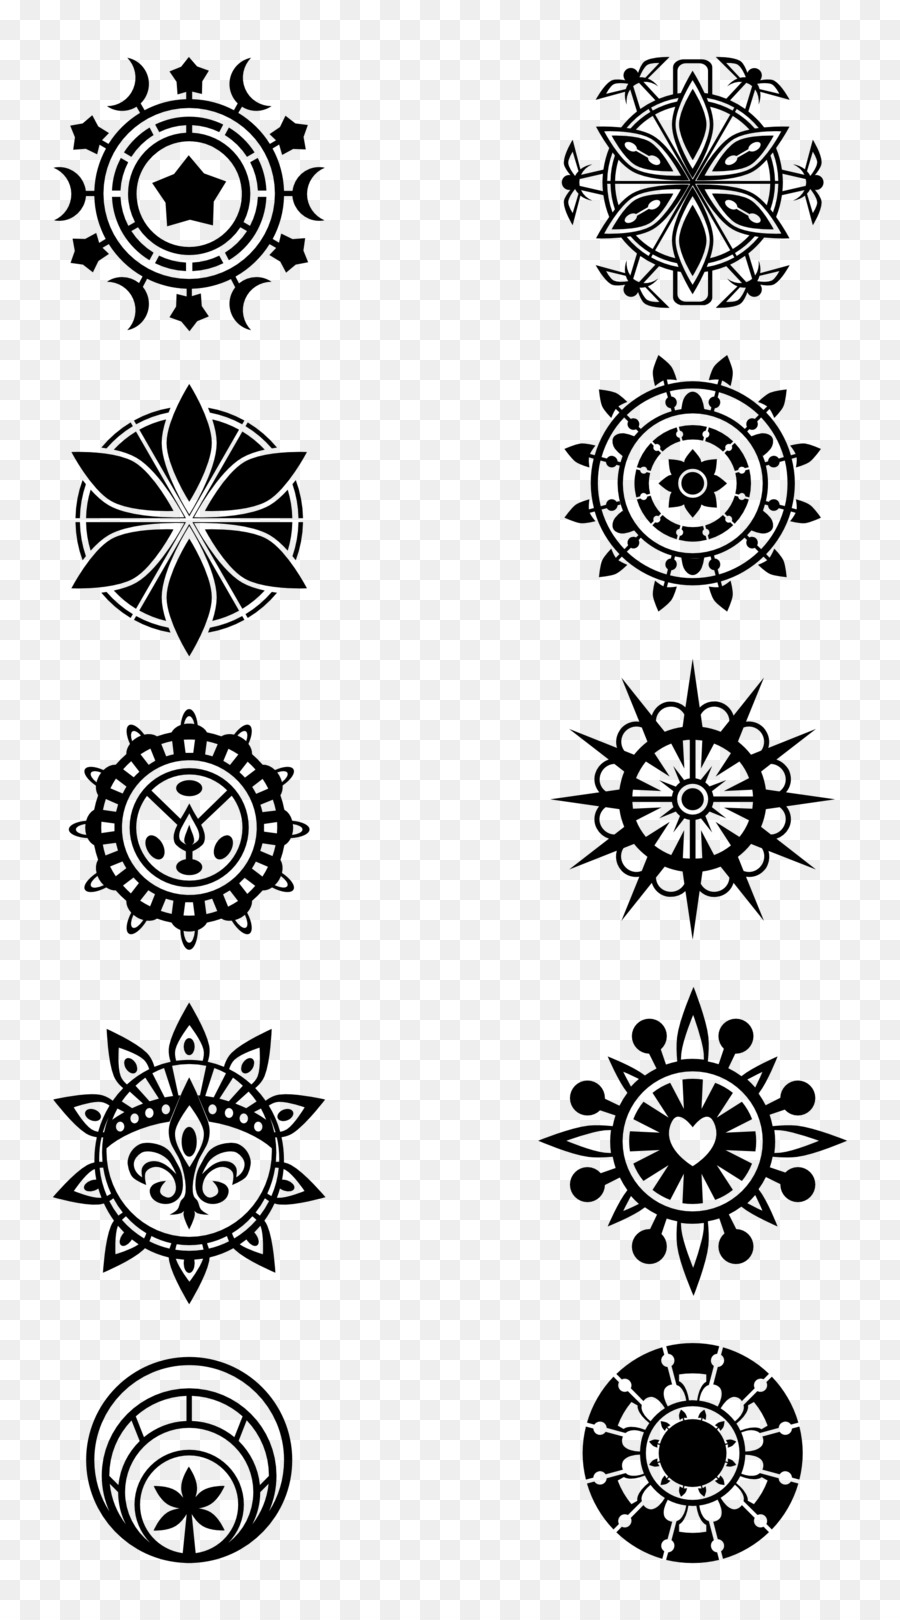 Black And White Flower Png Download 1969 3544 Free Transparent